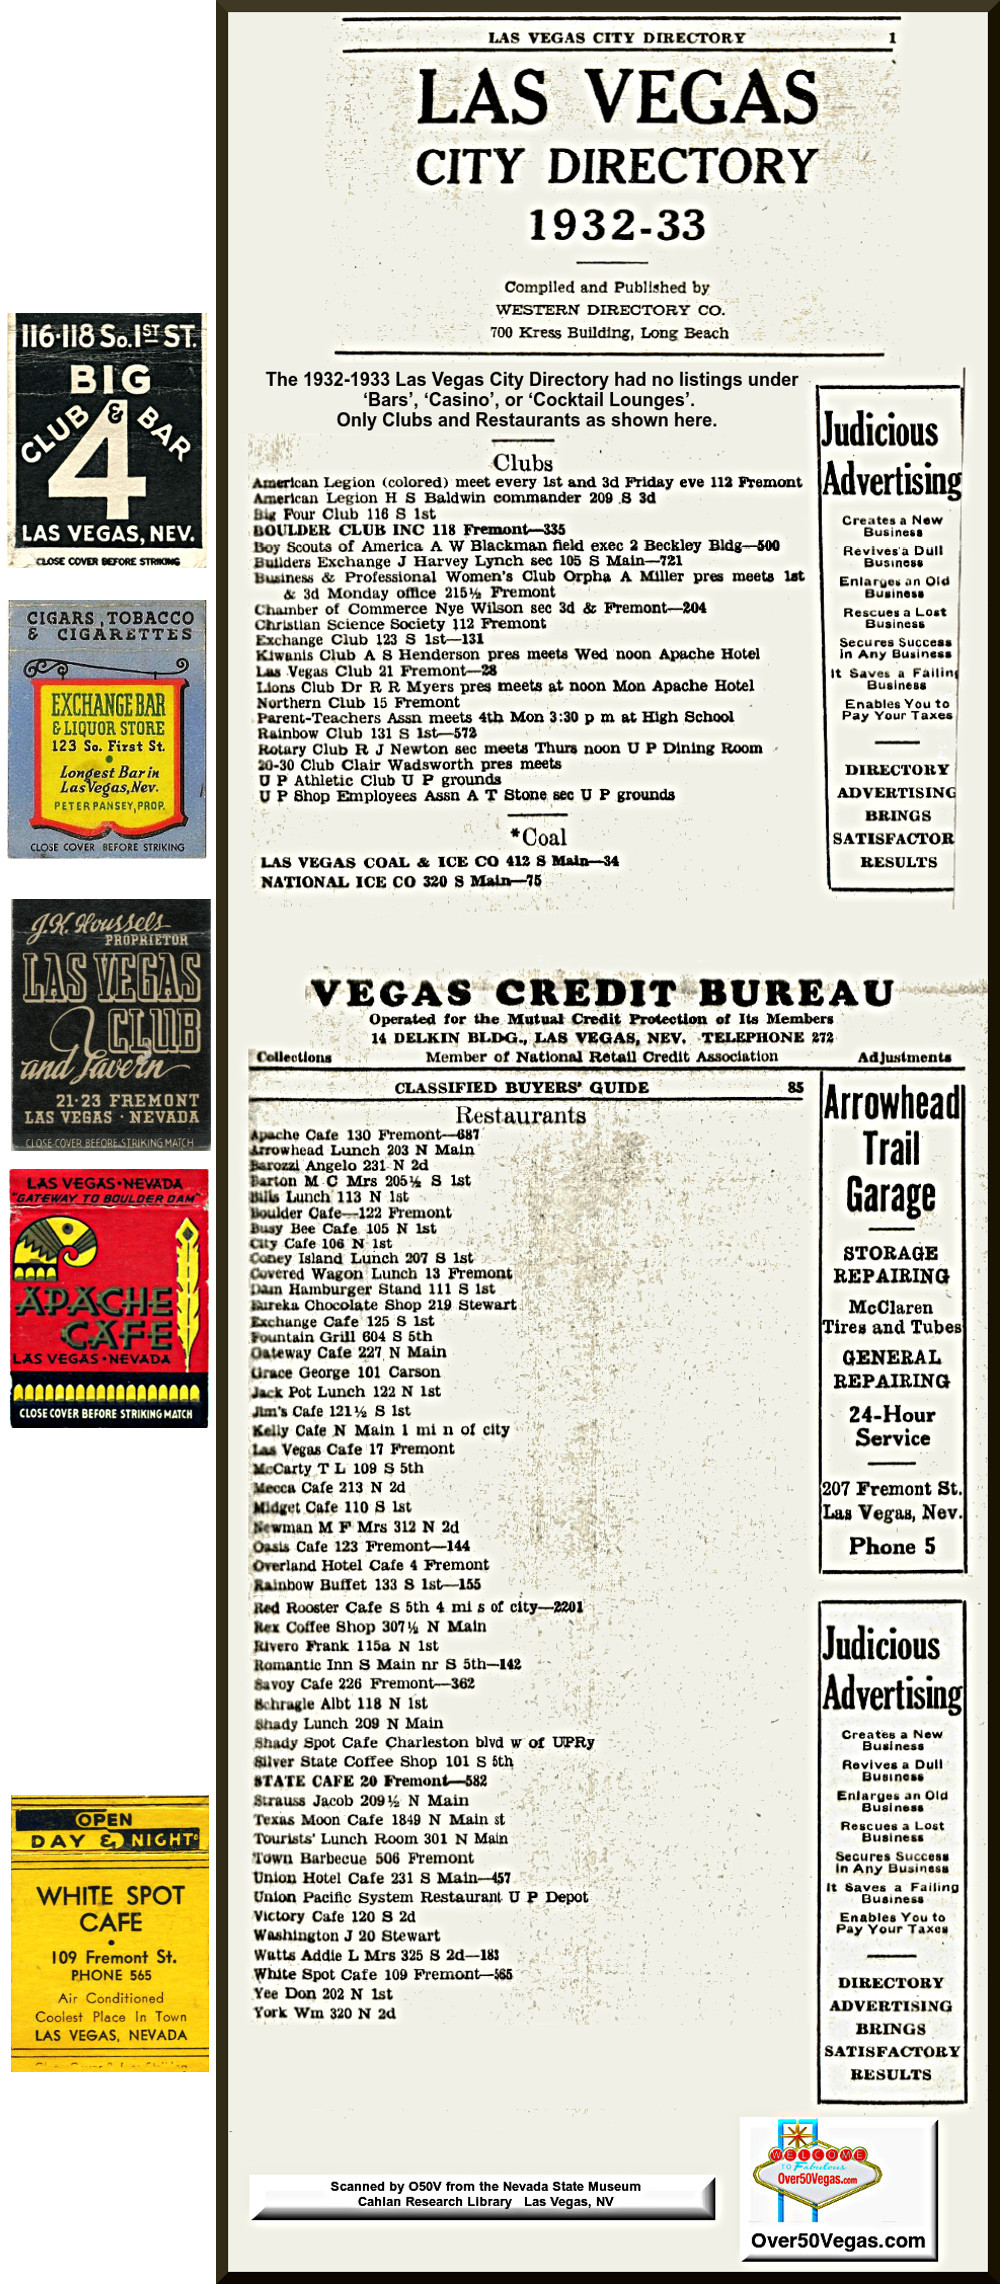 1932-1933 Las Vegas City Directory listings for Clubs